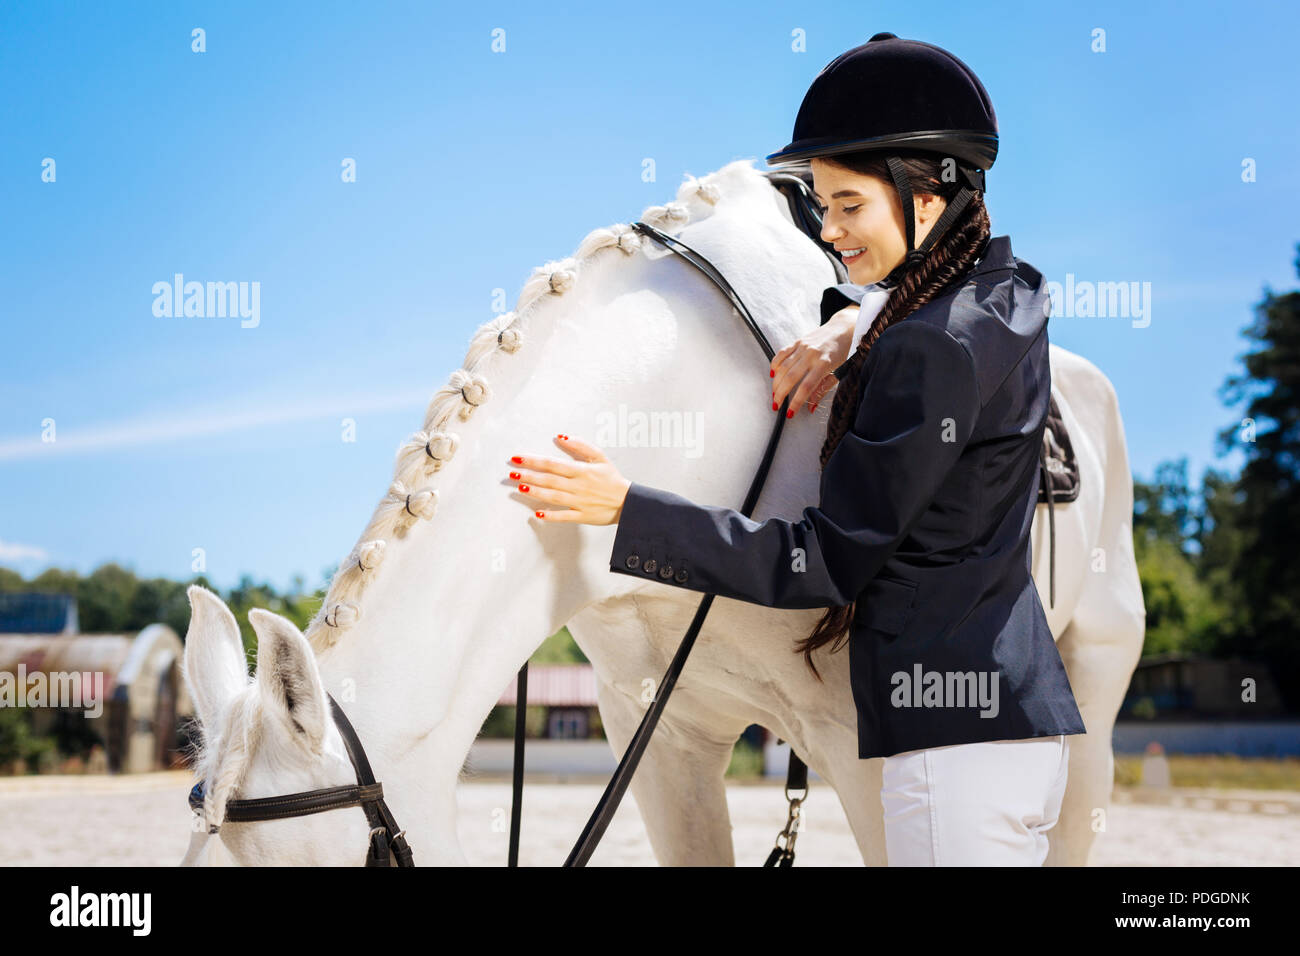 Appealing female rider wearing white trousers and dark jacket - Stock Image